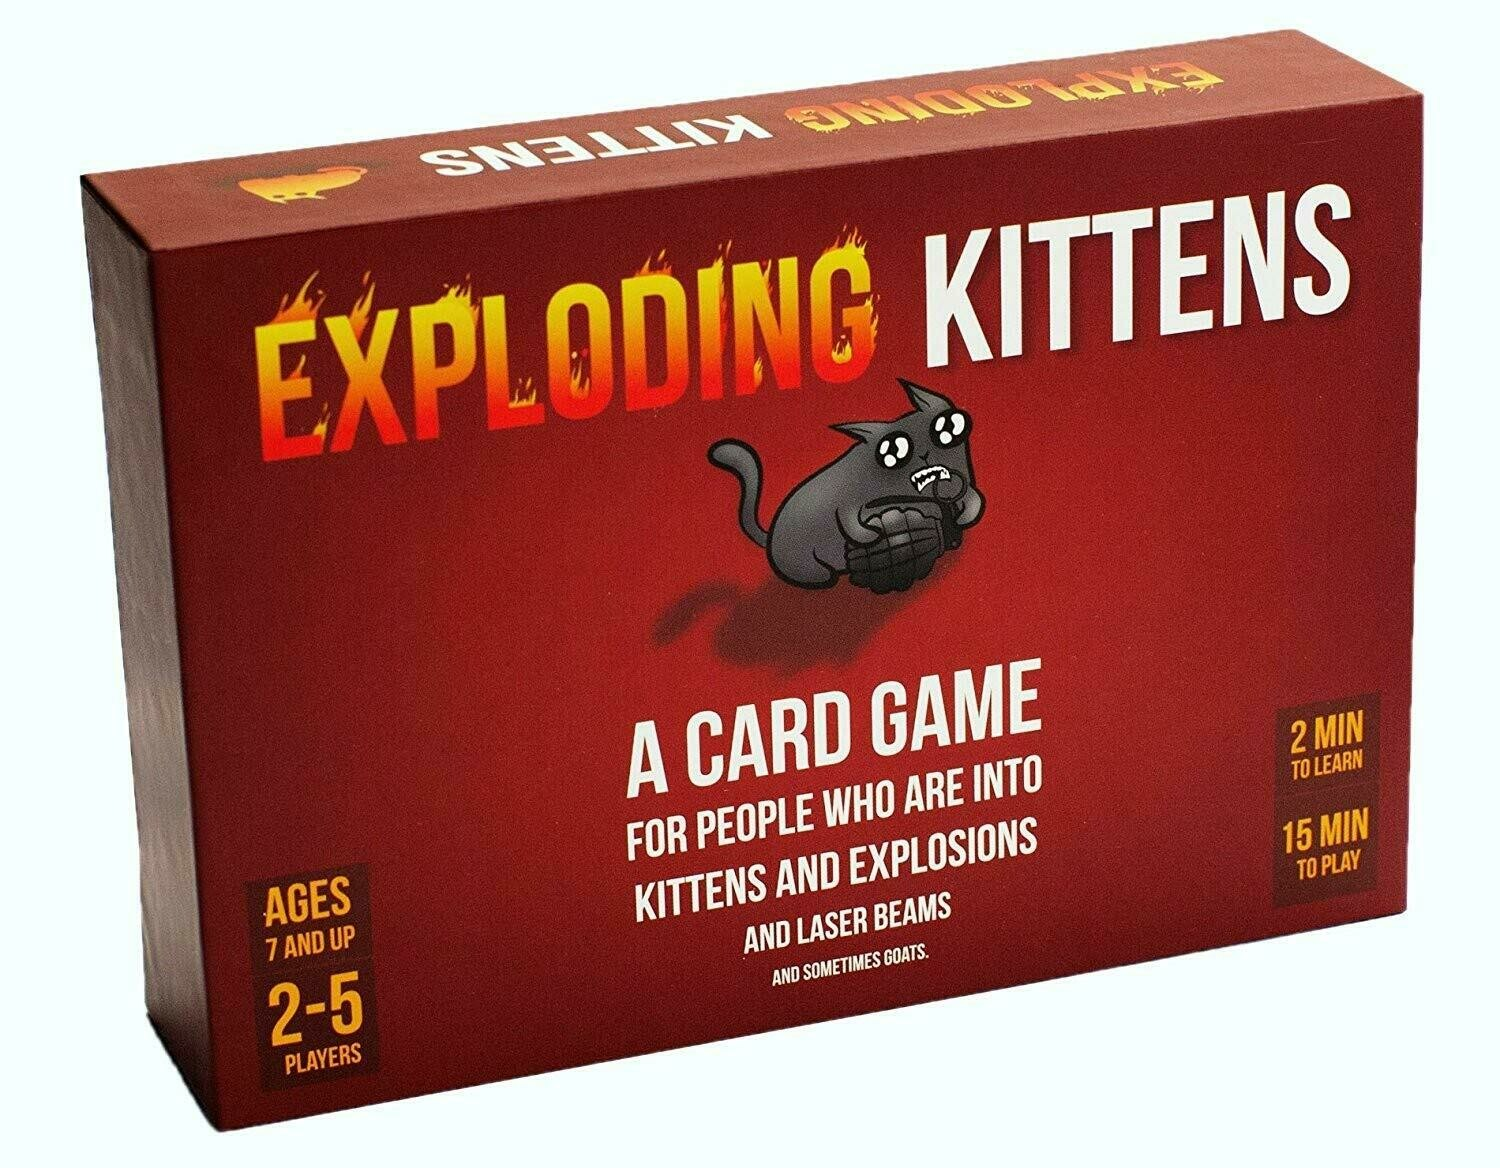 (NEW) Exploding Kittens Card Game (Original Edition)